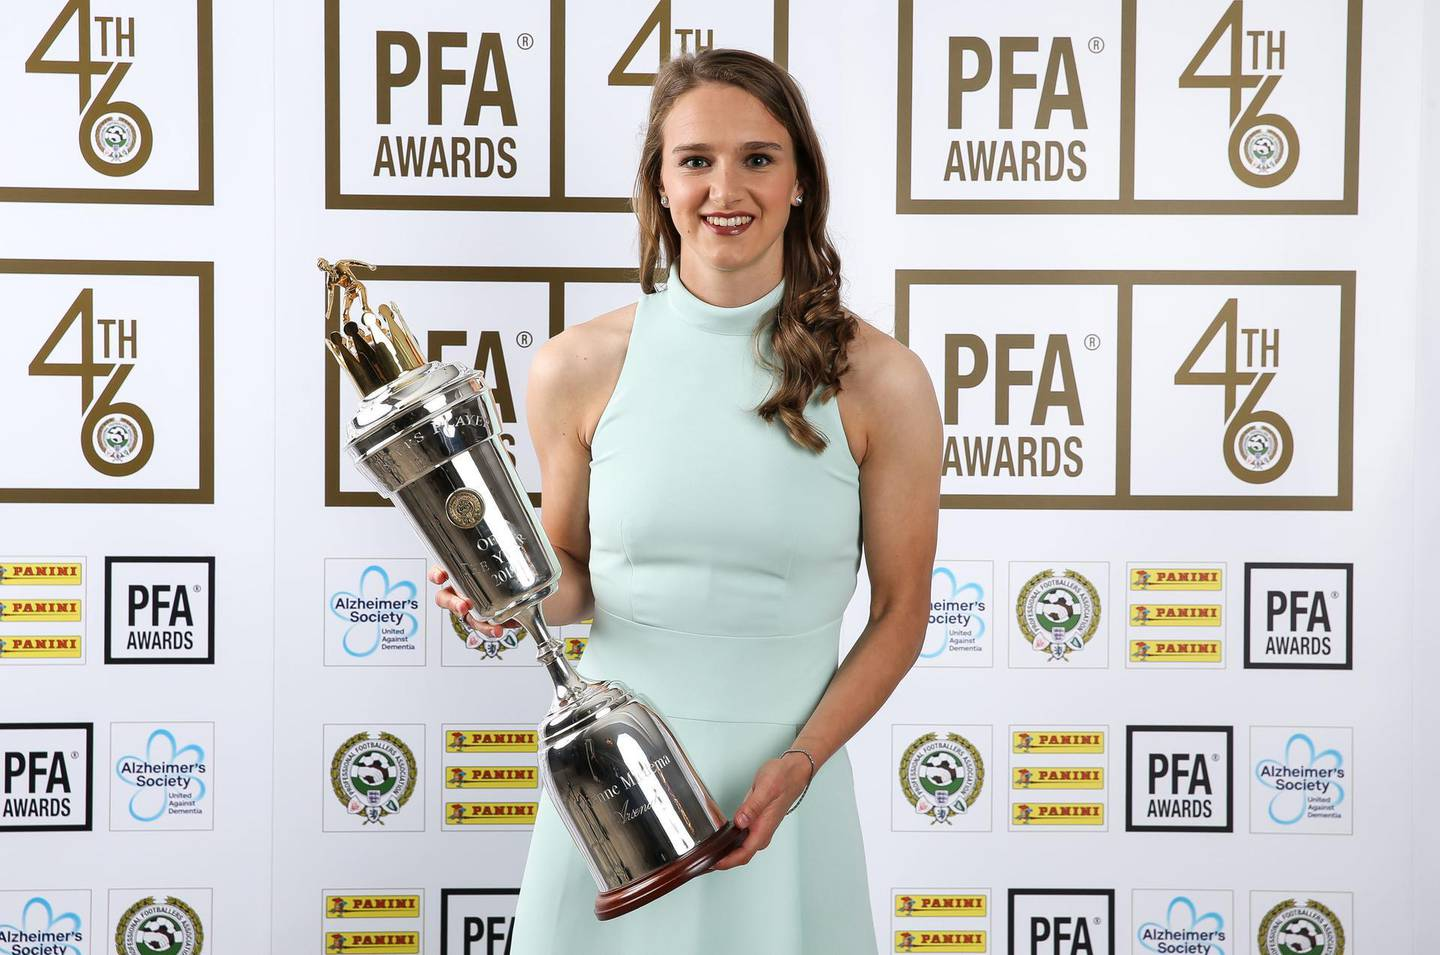 Arsenal's Vivianne Miedema poses with her PFA Player of the Year award during the 2019 PFA Awards at the Grosvenor House Hotel, London. PRESS ASSOCIATION Photo. Picture date: Sunday April 28, 2019. See PA story SOCCER PFA. Photo credit should read: Barrington Coombs/PA Wire